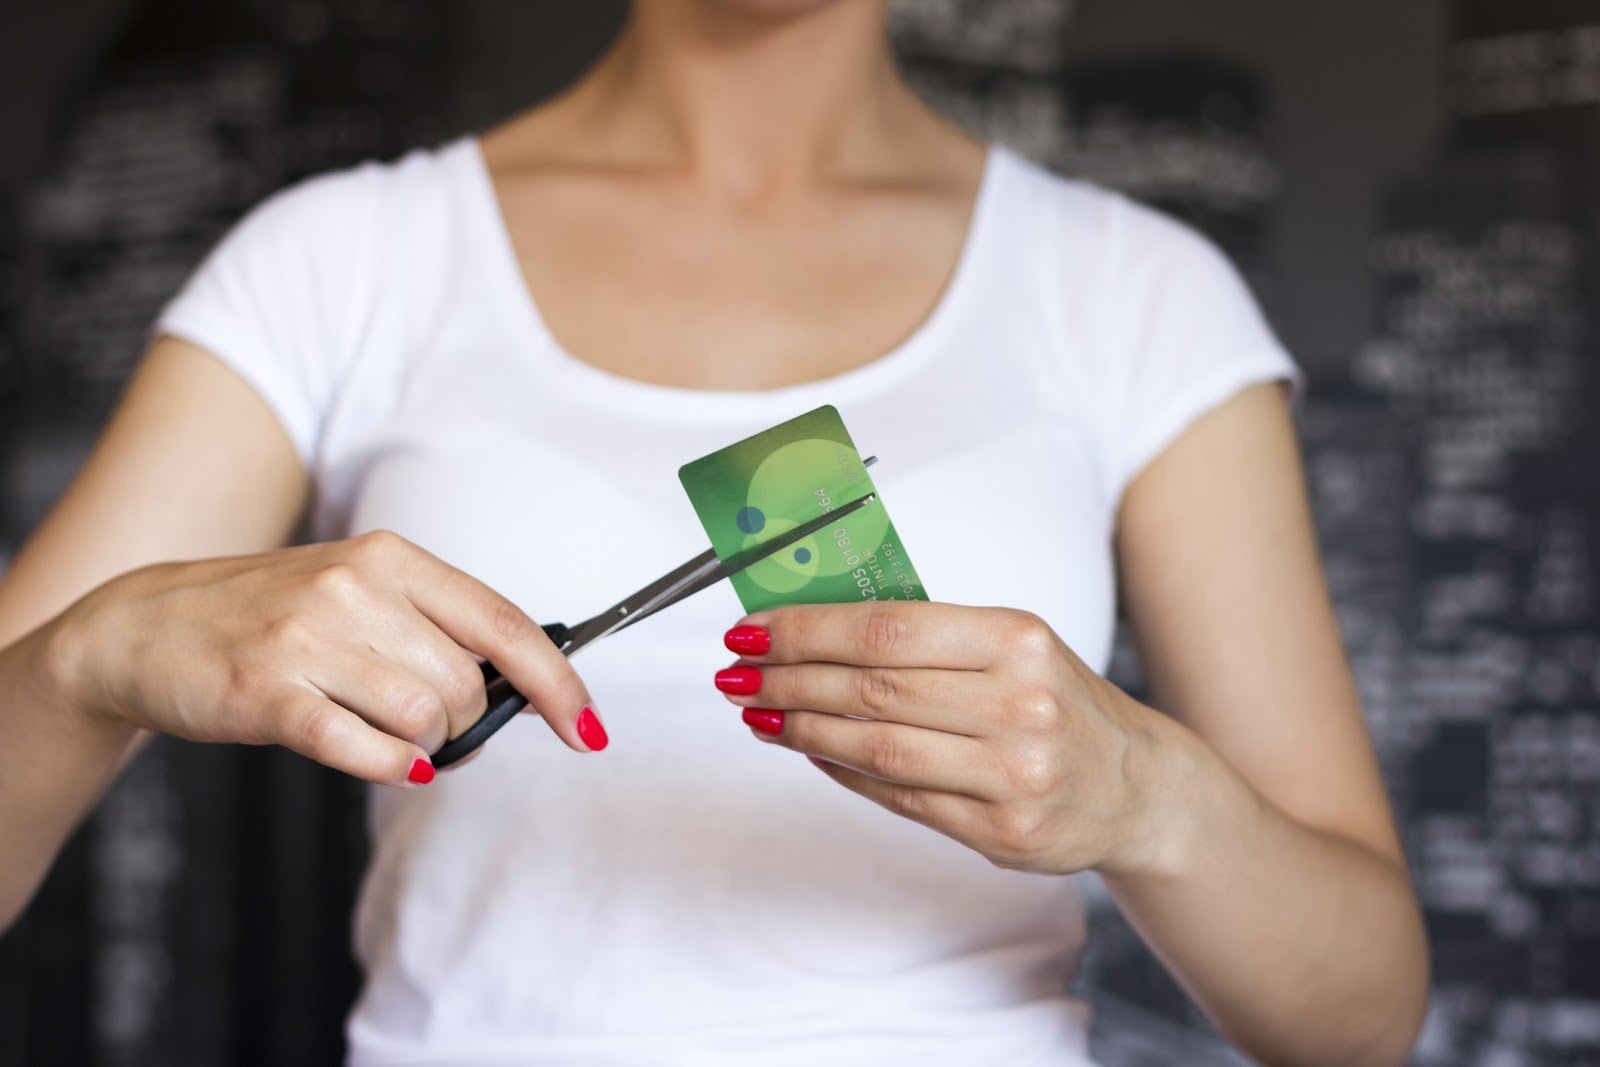 Woman cutting a credit card with scissors